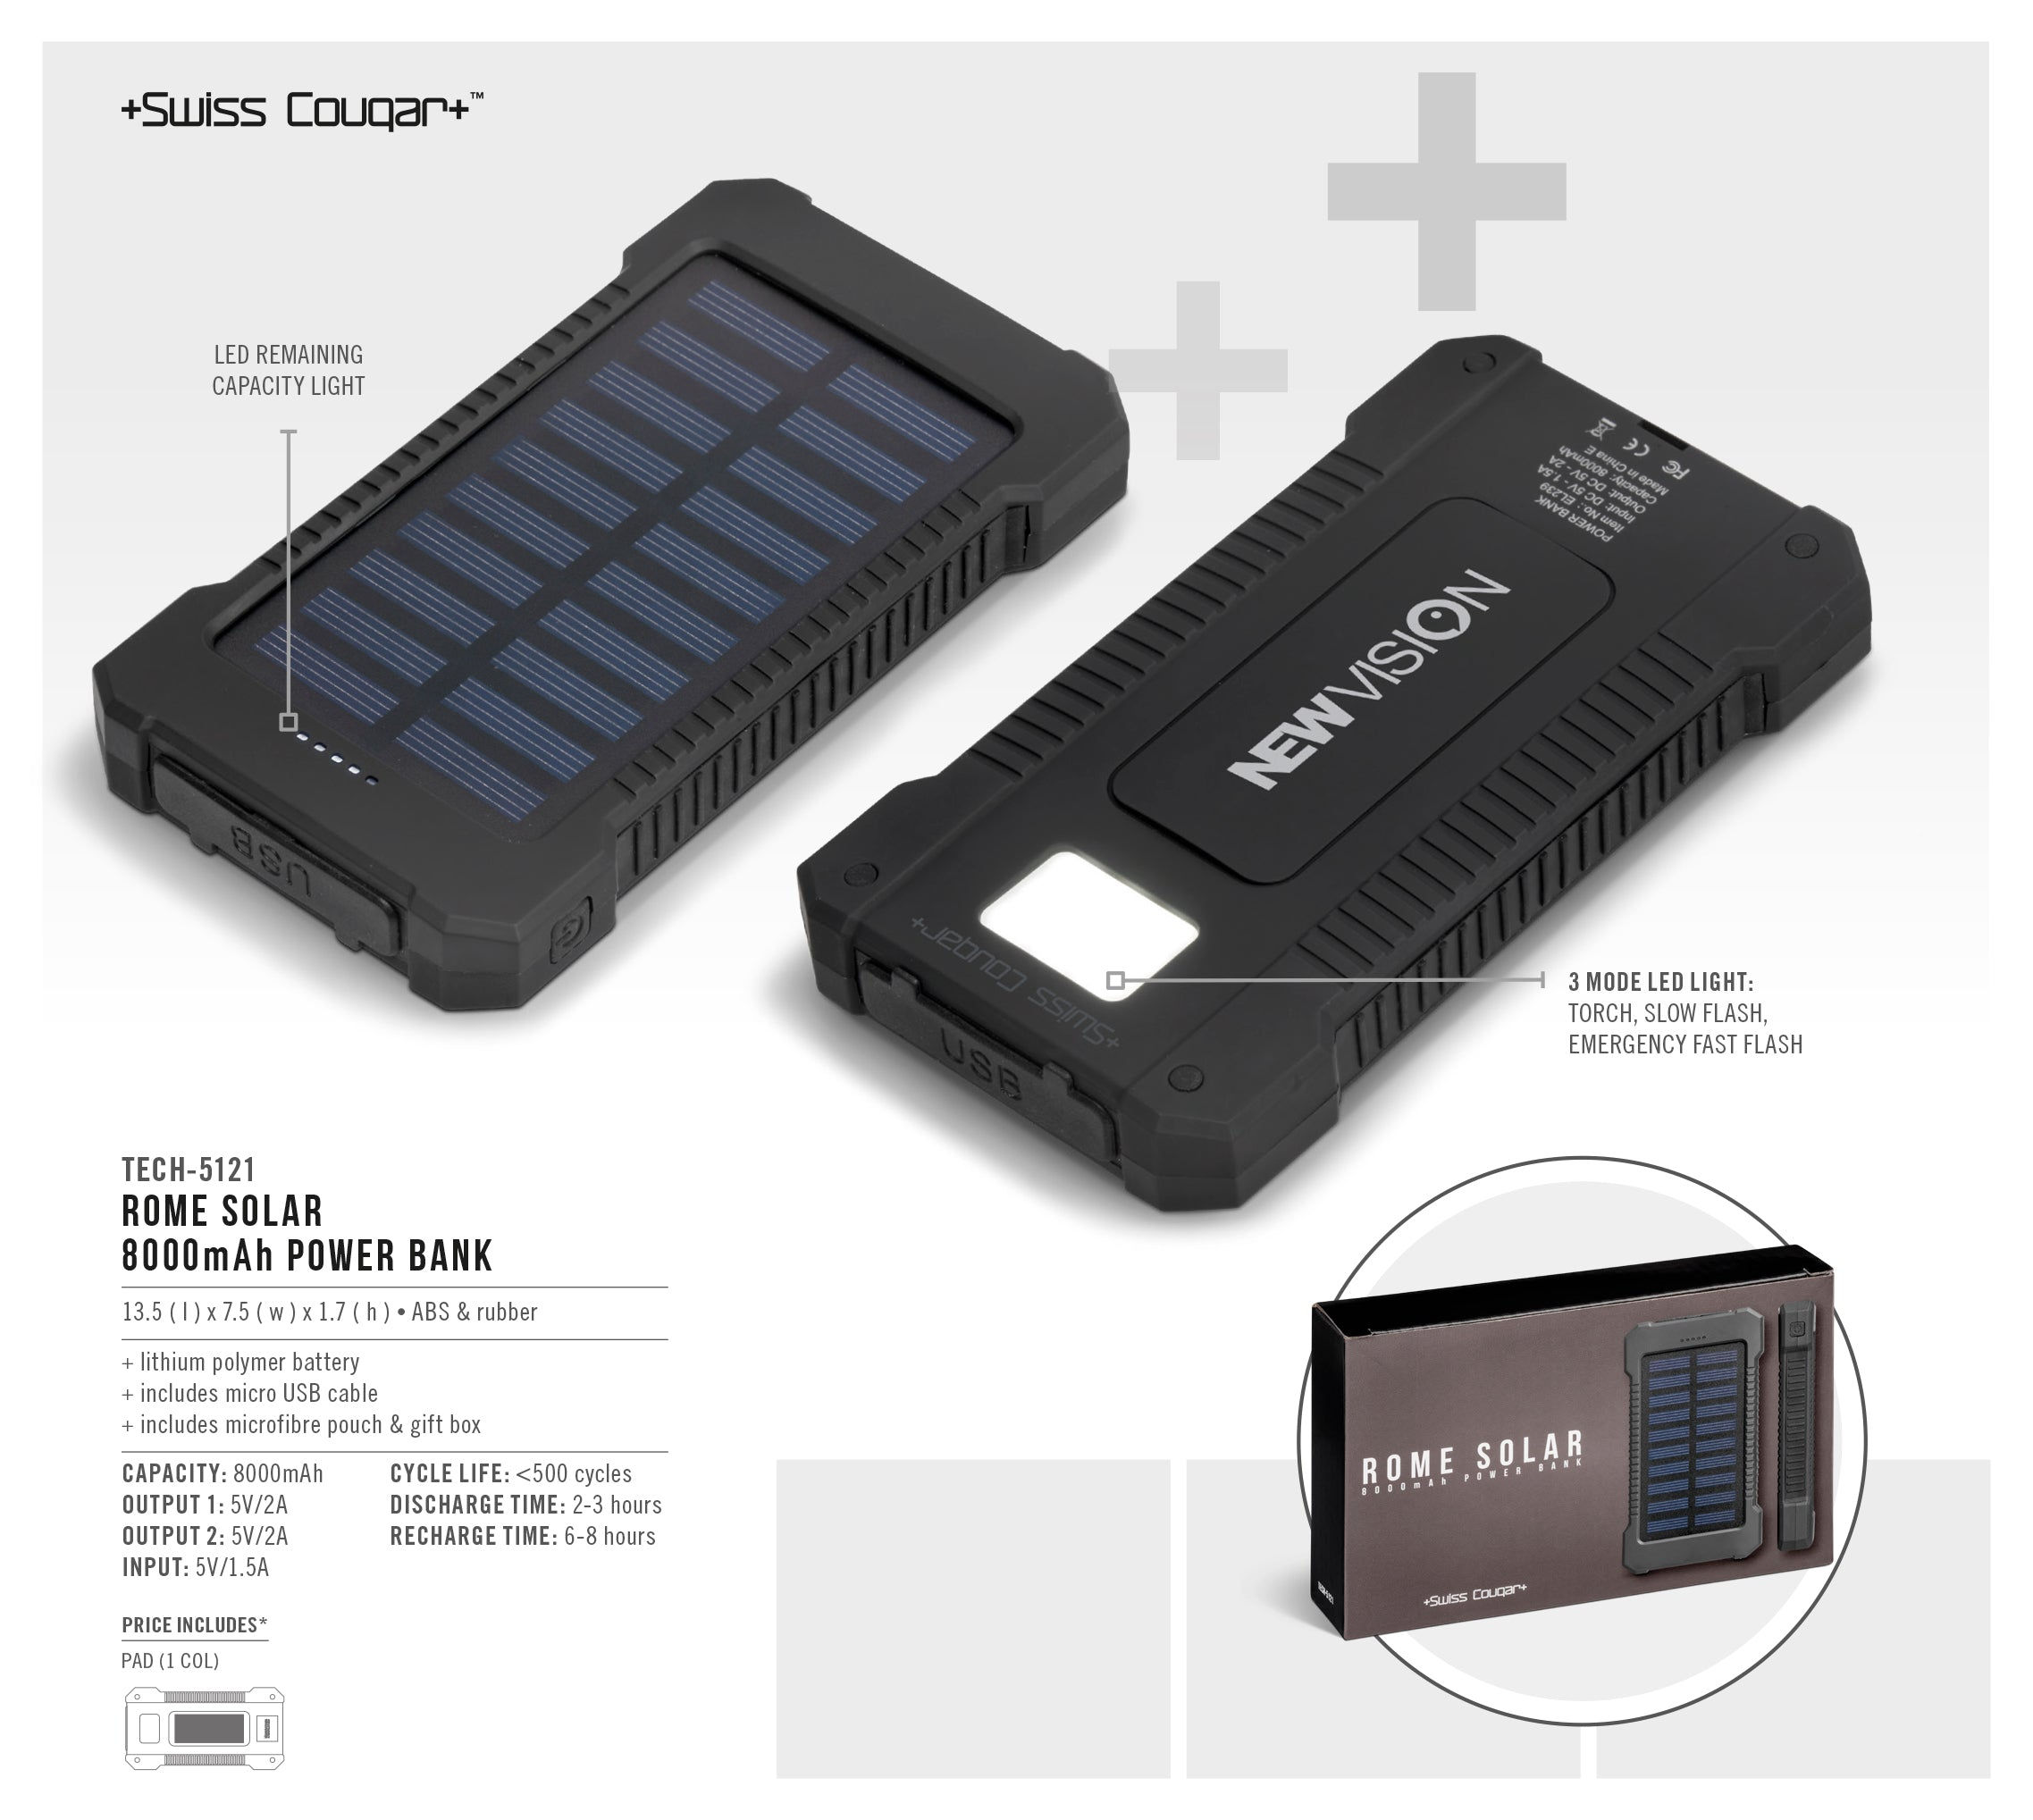 Swiss Cougar Rome Solar 8000mAh Power Bank